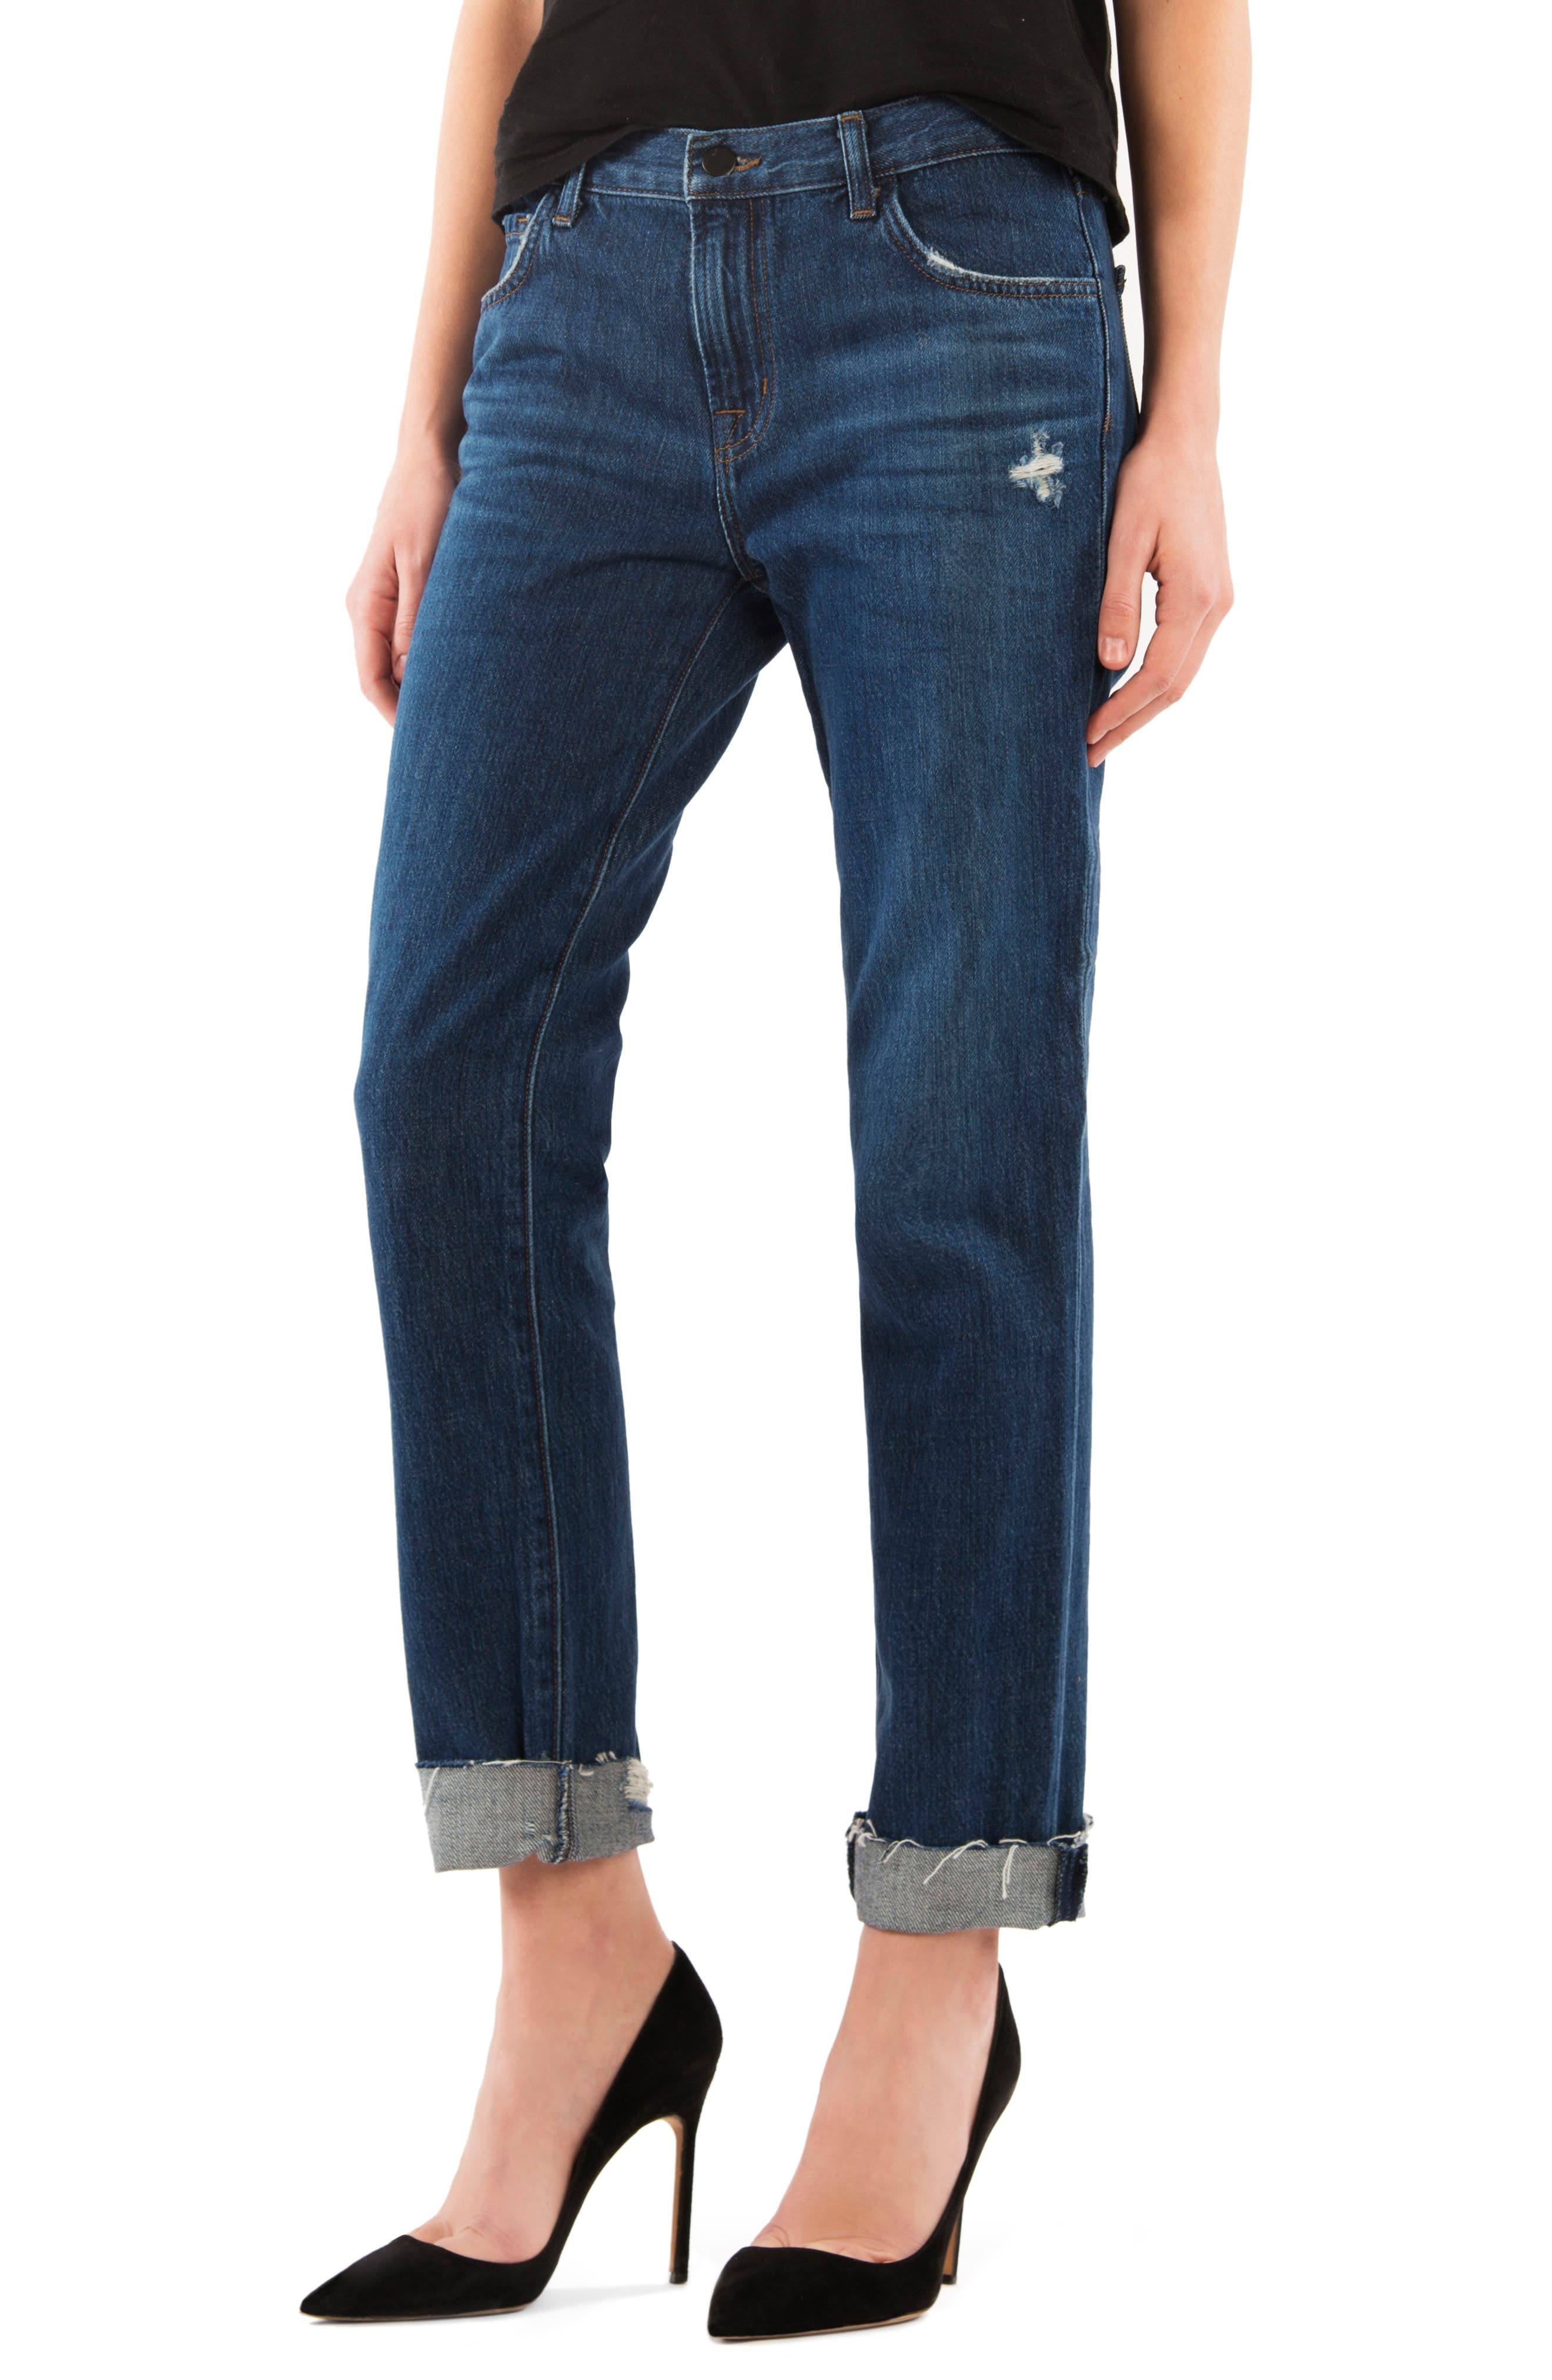 Alternate Image 1 Selected - J Brand Johnny Mid Rise Boyfriend Jeans (Doubletake)